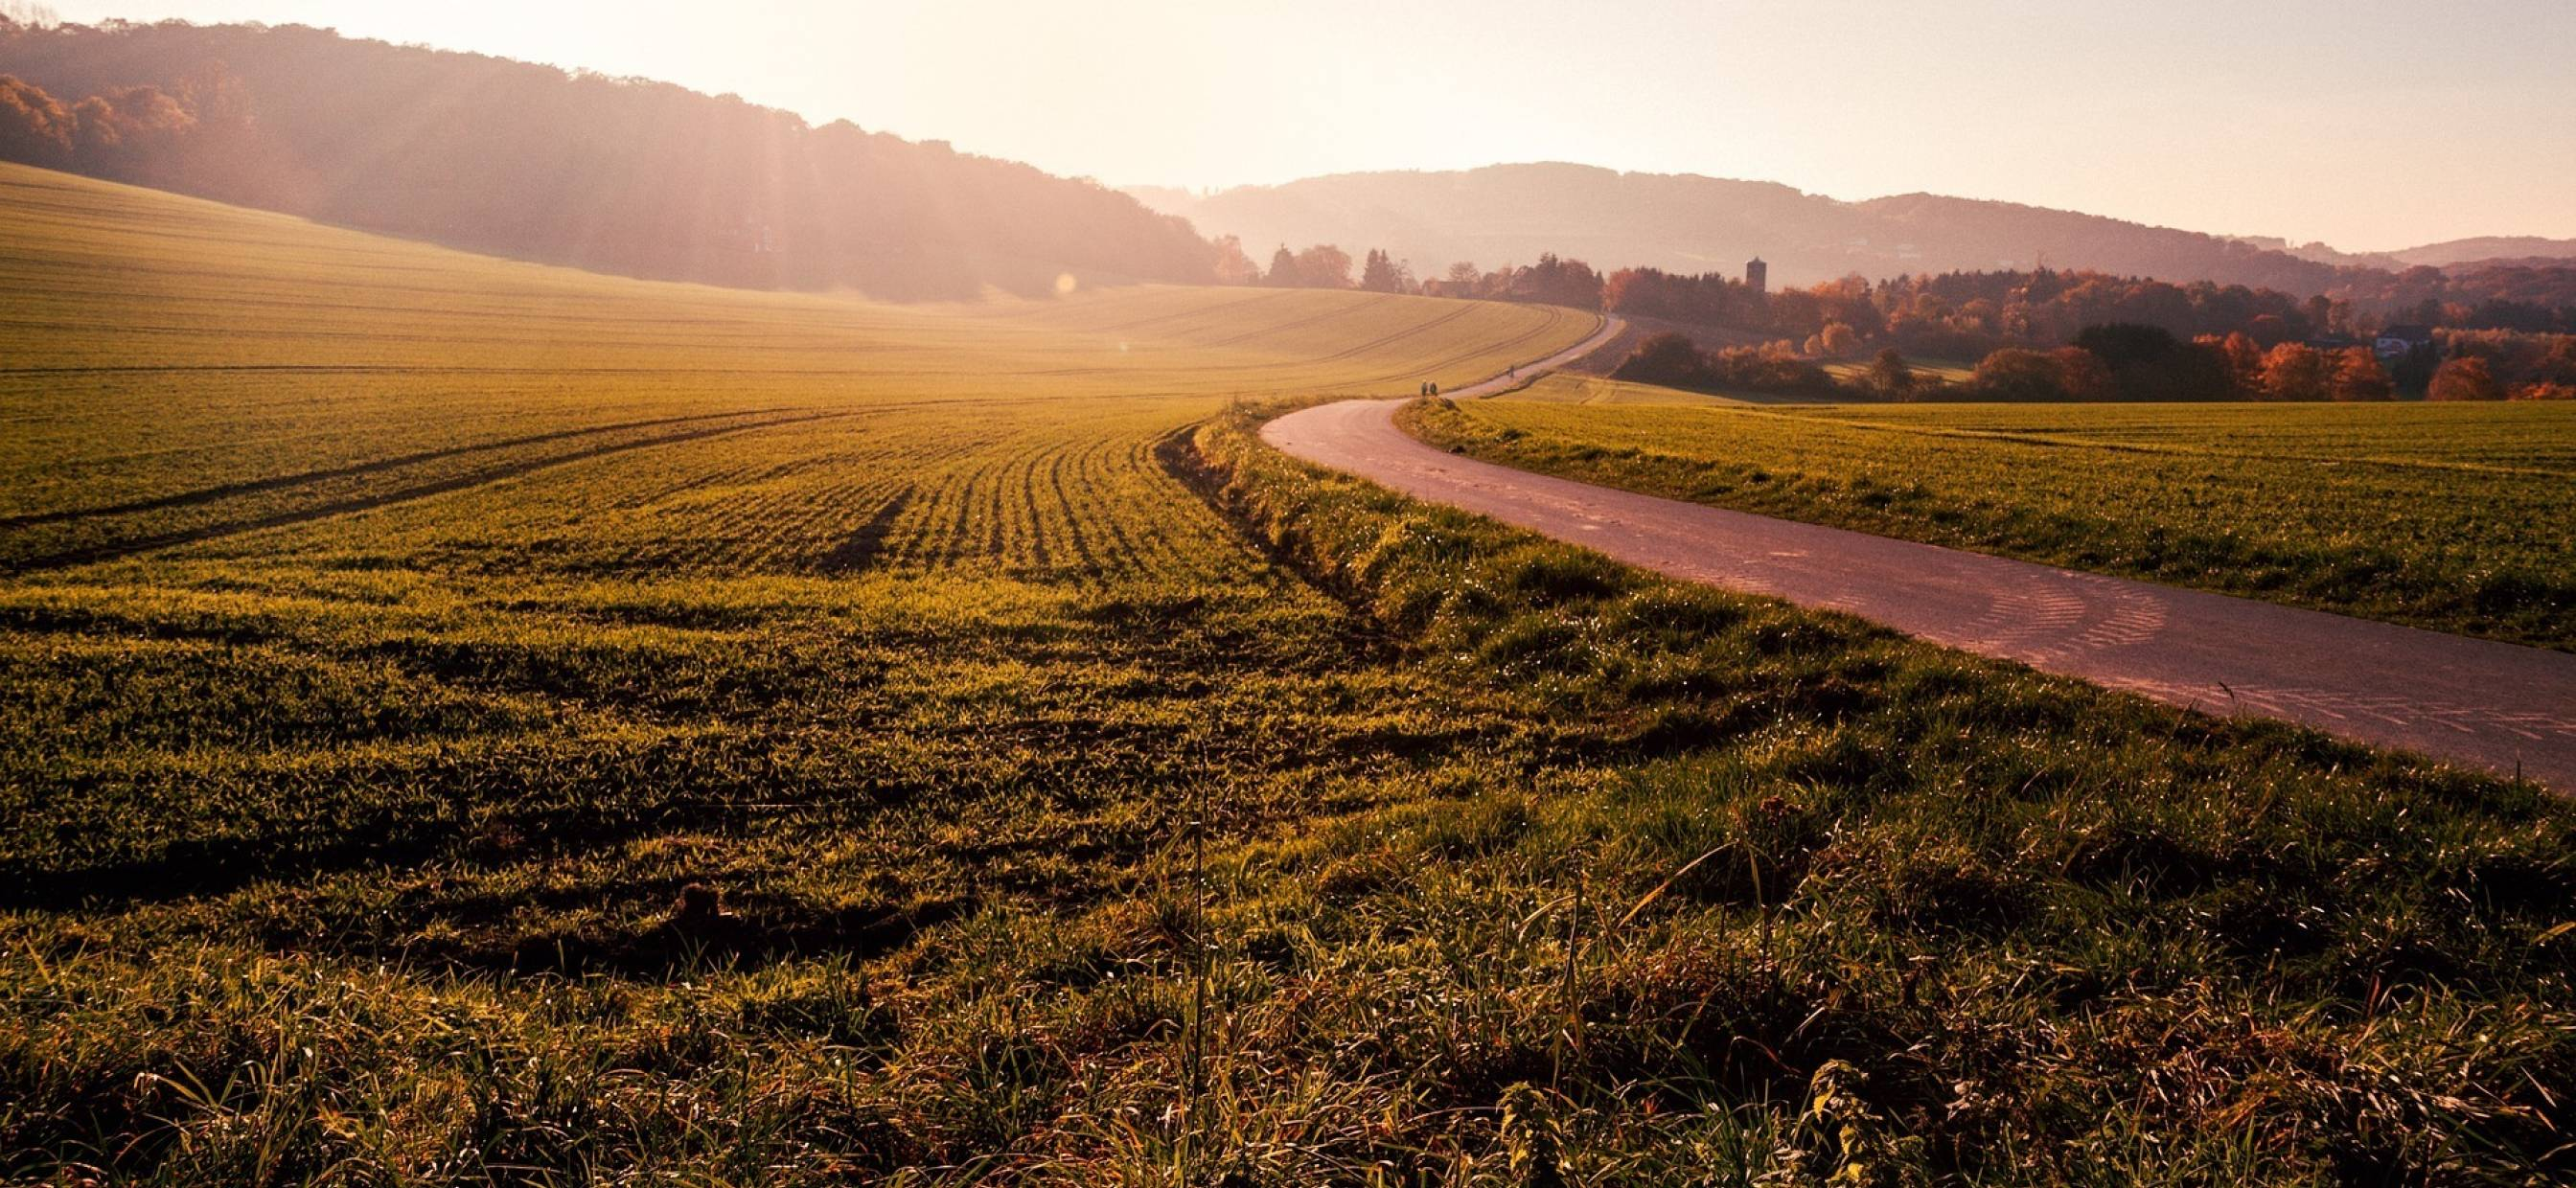 Price Per Acre Valuation for Your Land Purchase